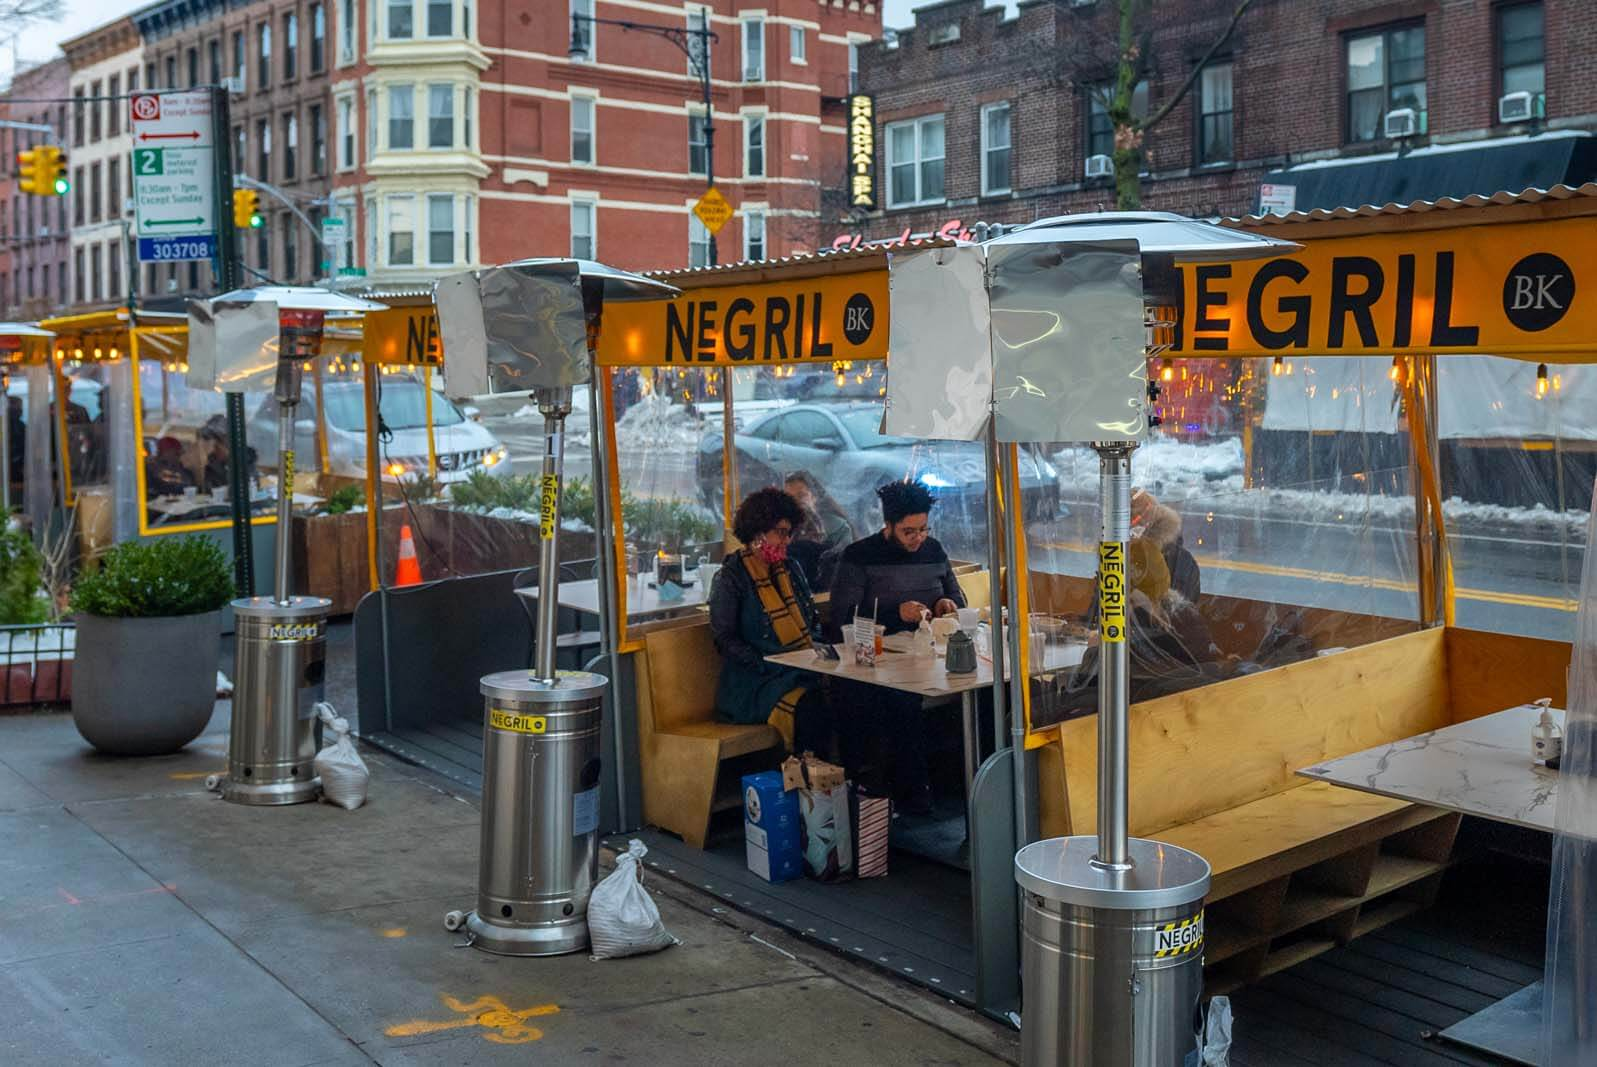 Negril BK heated outdoor dining in Brooklyn Park Slope